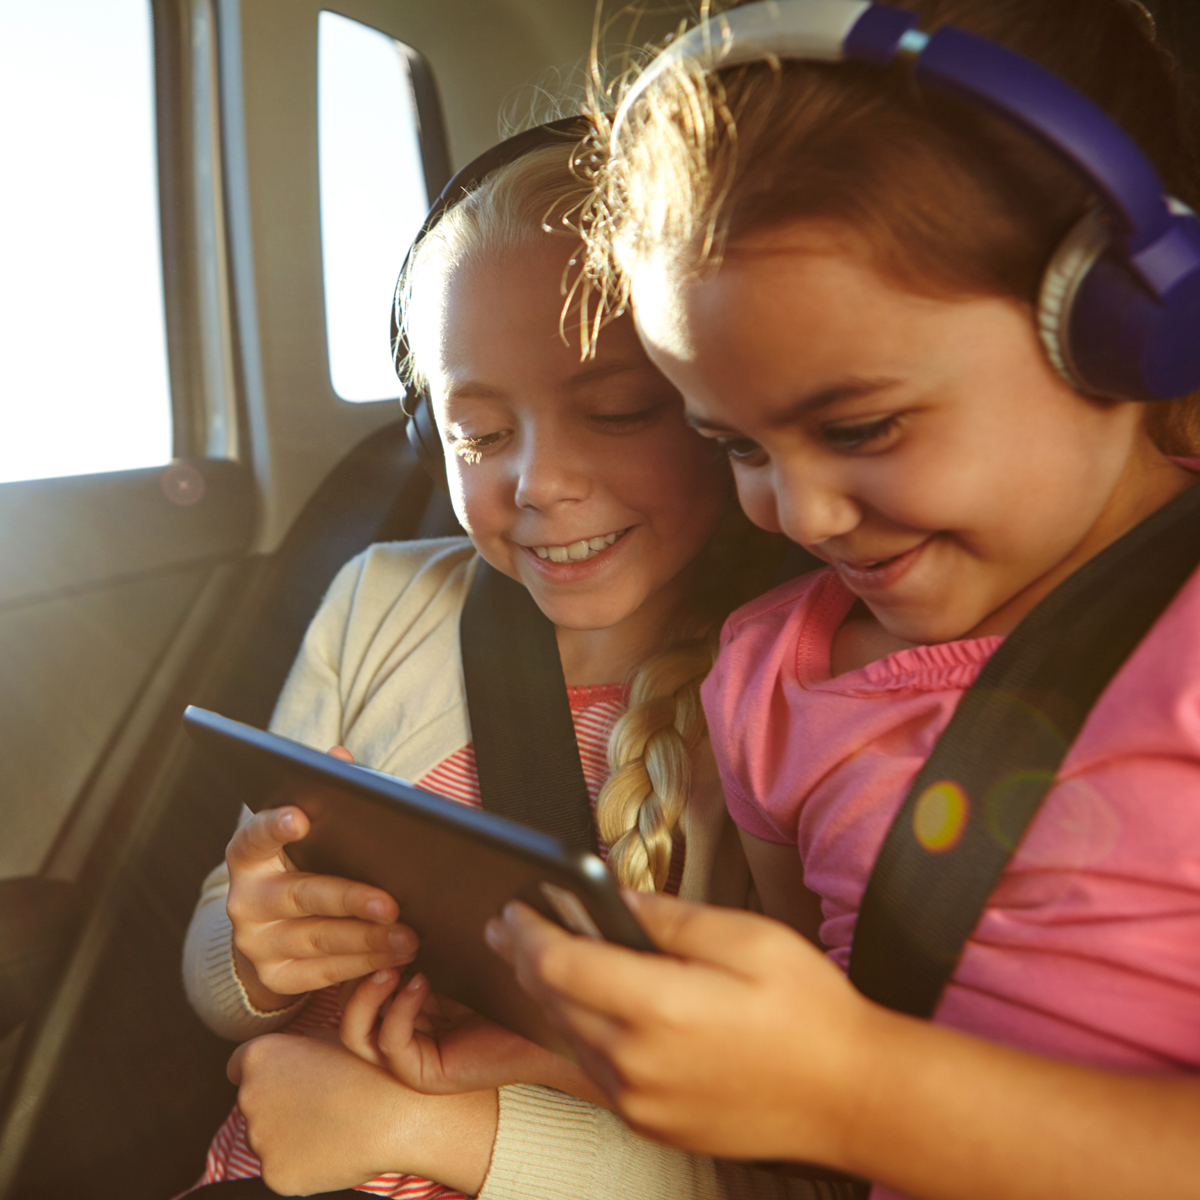 PureCam – The Ultimate Assist for Carpooling Parents